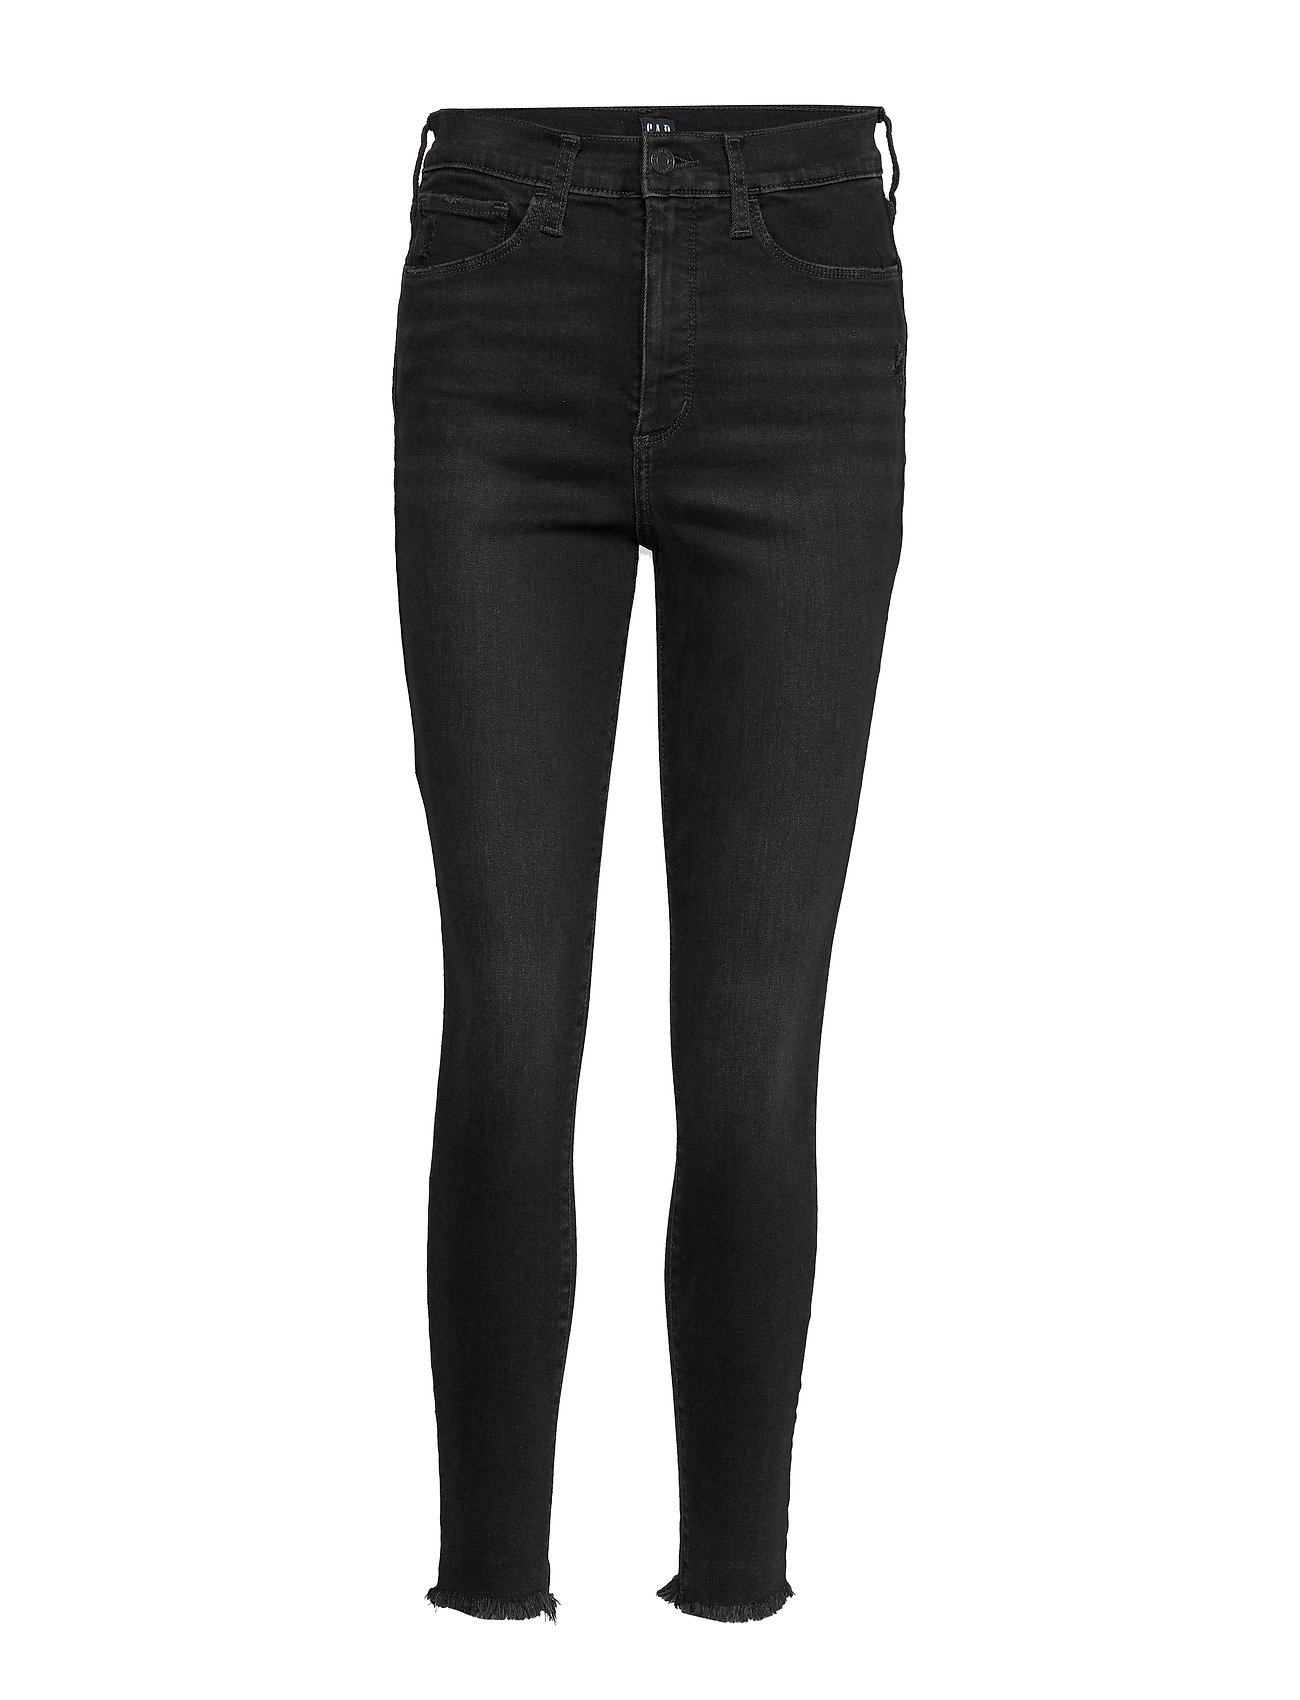 GAP High Rise Favorite Jeggings with Secret Smoothing Pockets - WORN BLACK DESTROY